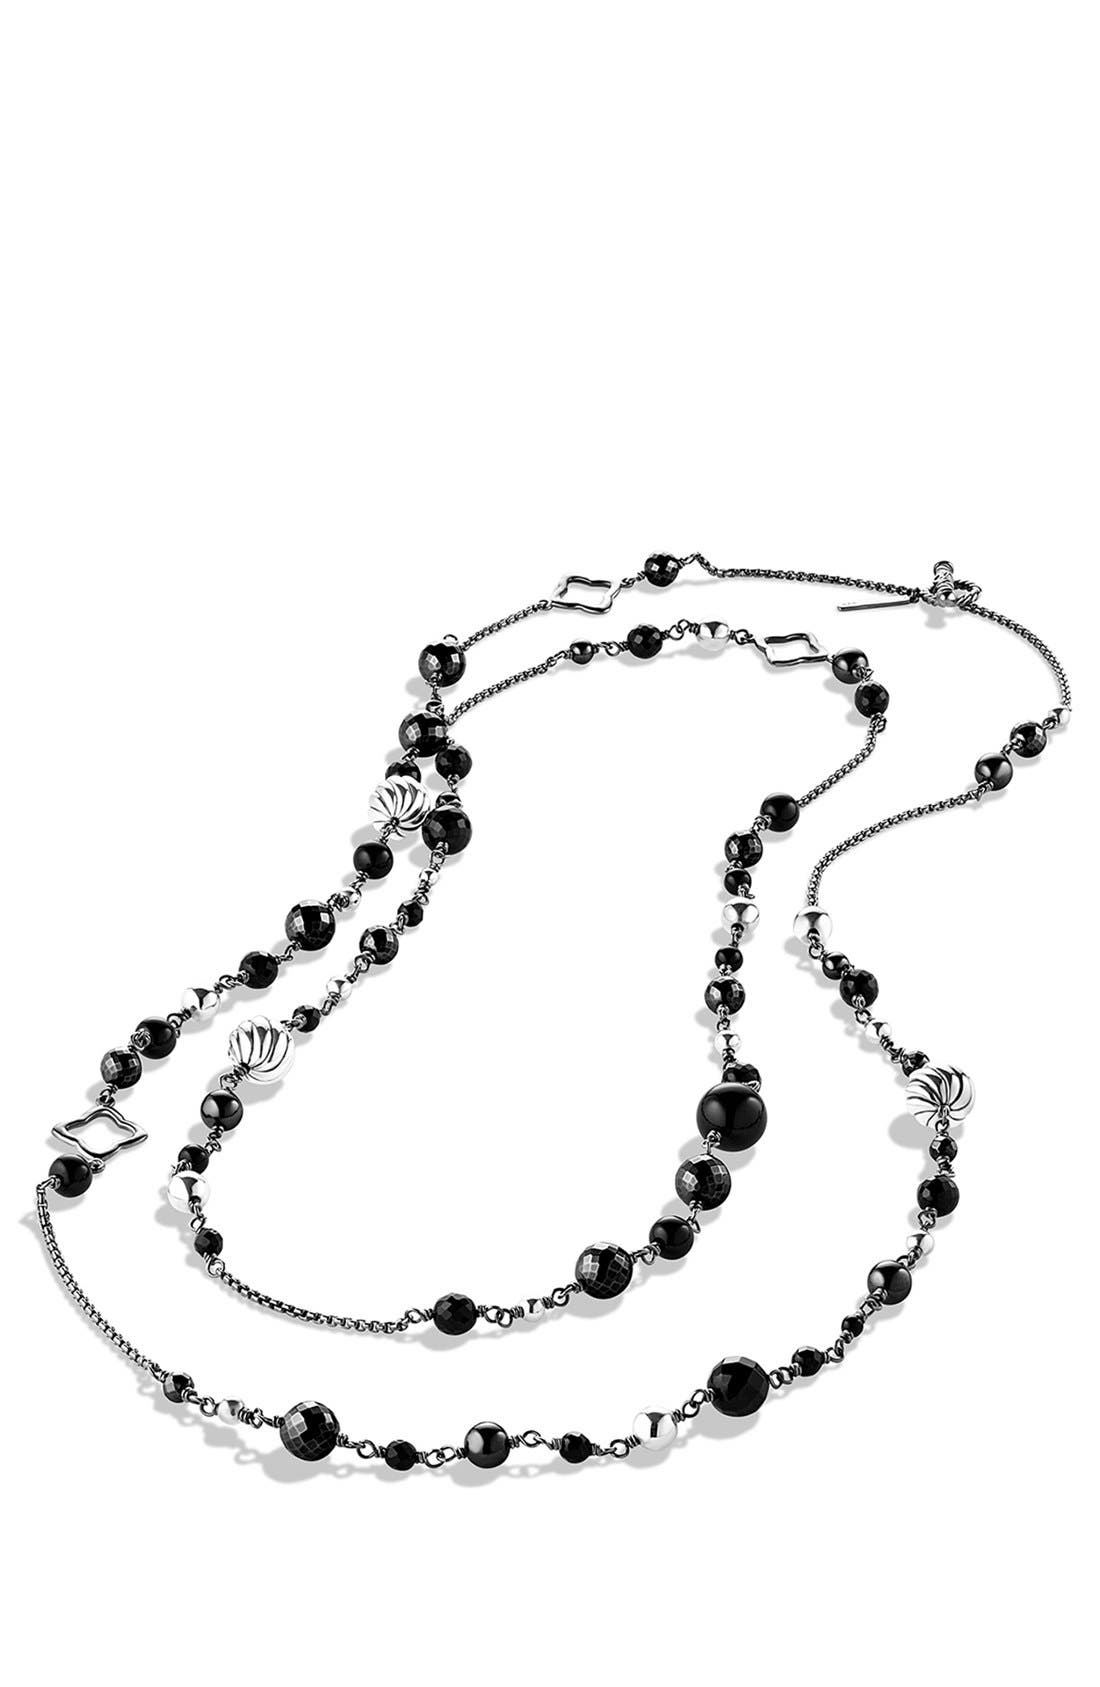 'DY Elements' Chain Necklace with Black Onyx and Hematine,                             Alternate thumbnail 2, color,                             Black Onyx